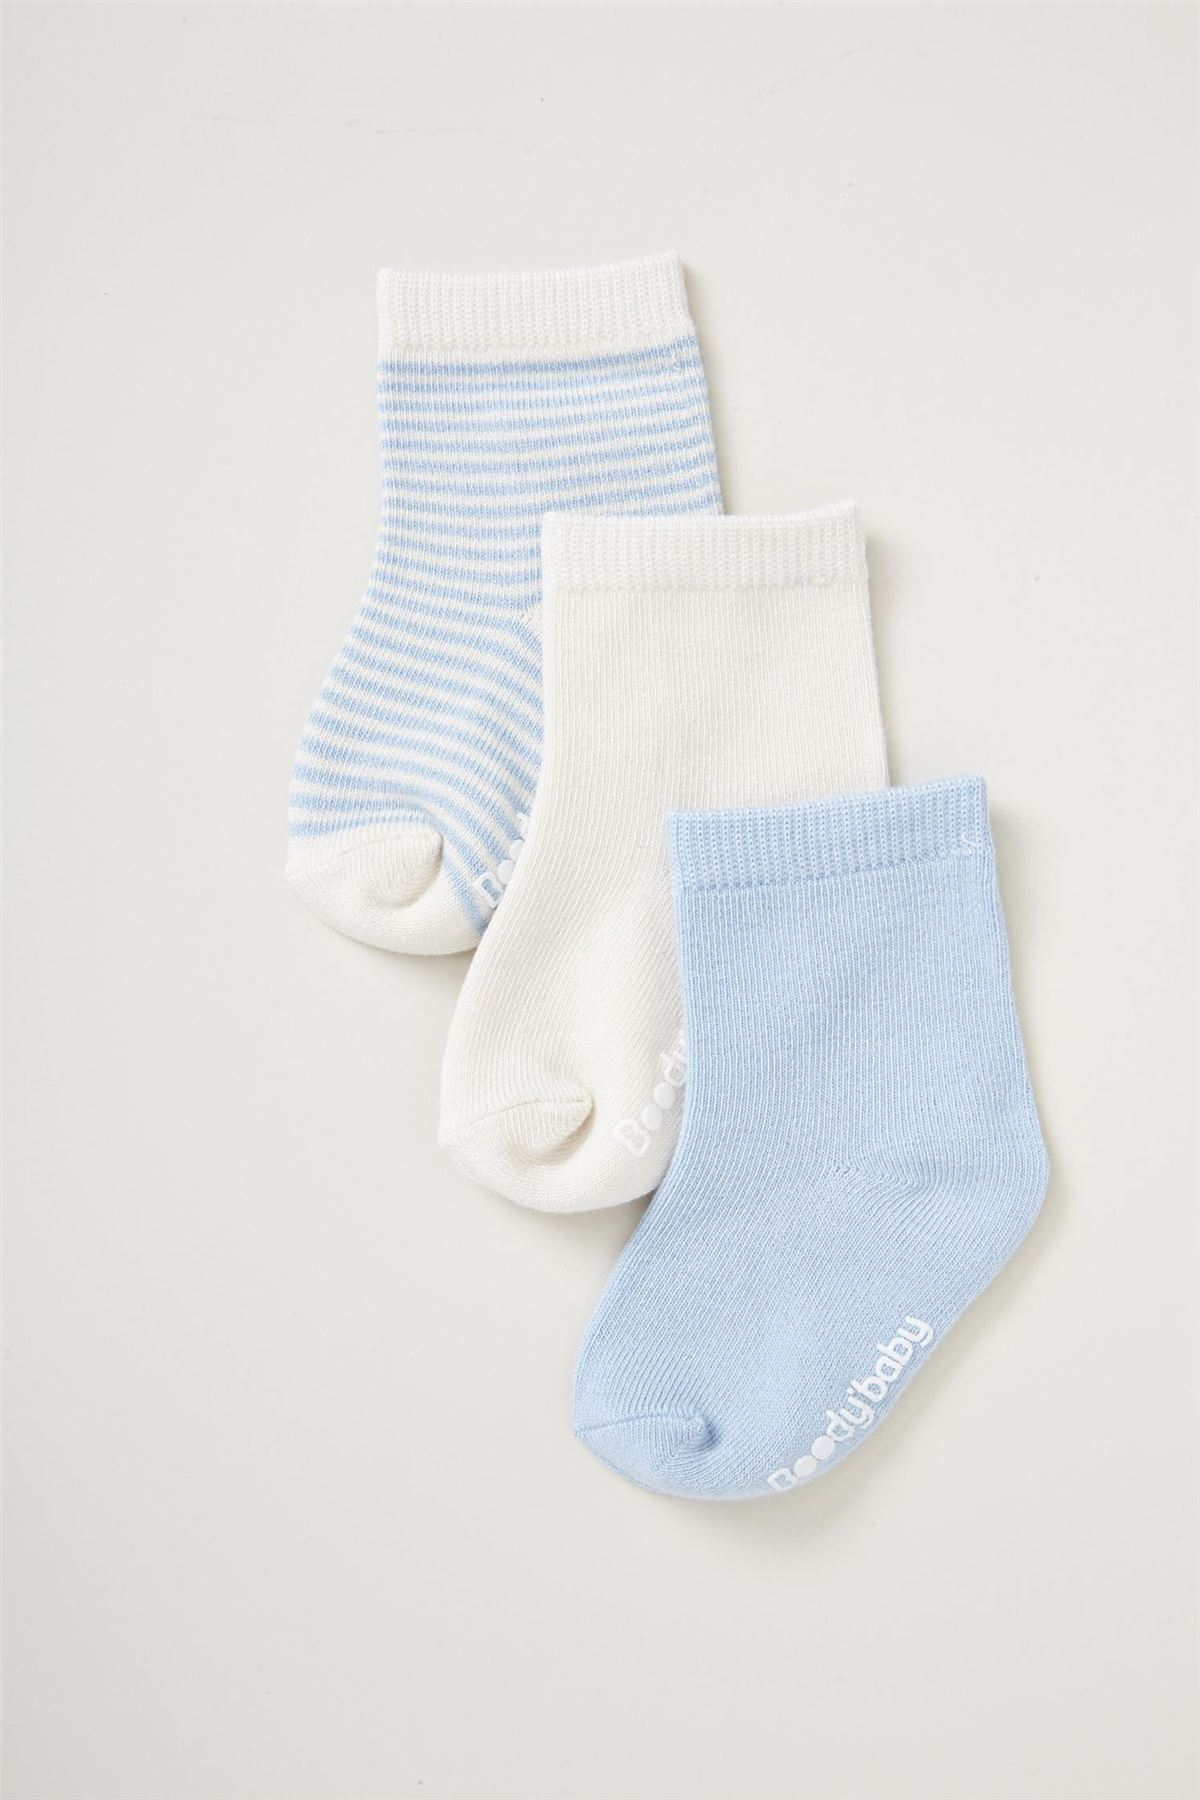 Boody Organic Bamboo Baby Boy Girl Socks 3 Pack Blue Pink 0 3 3 6